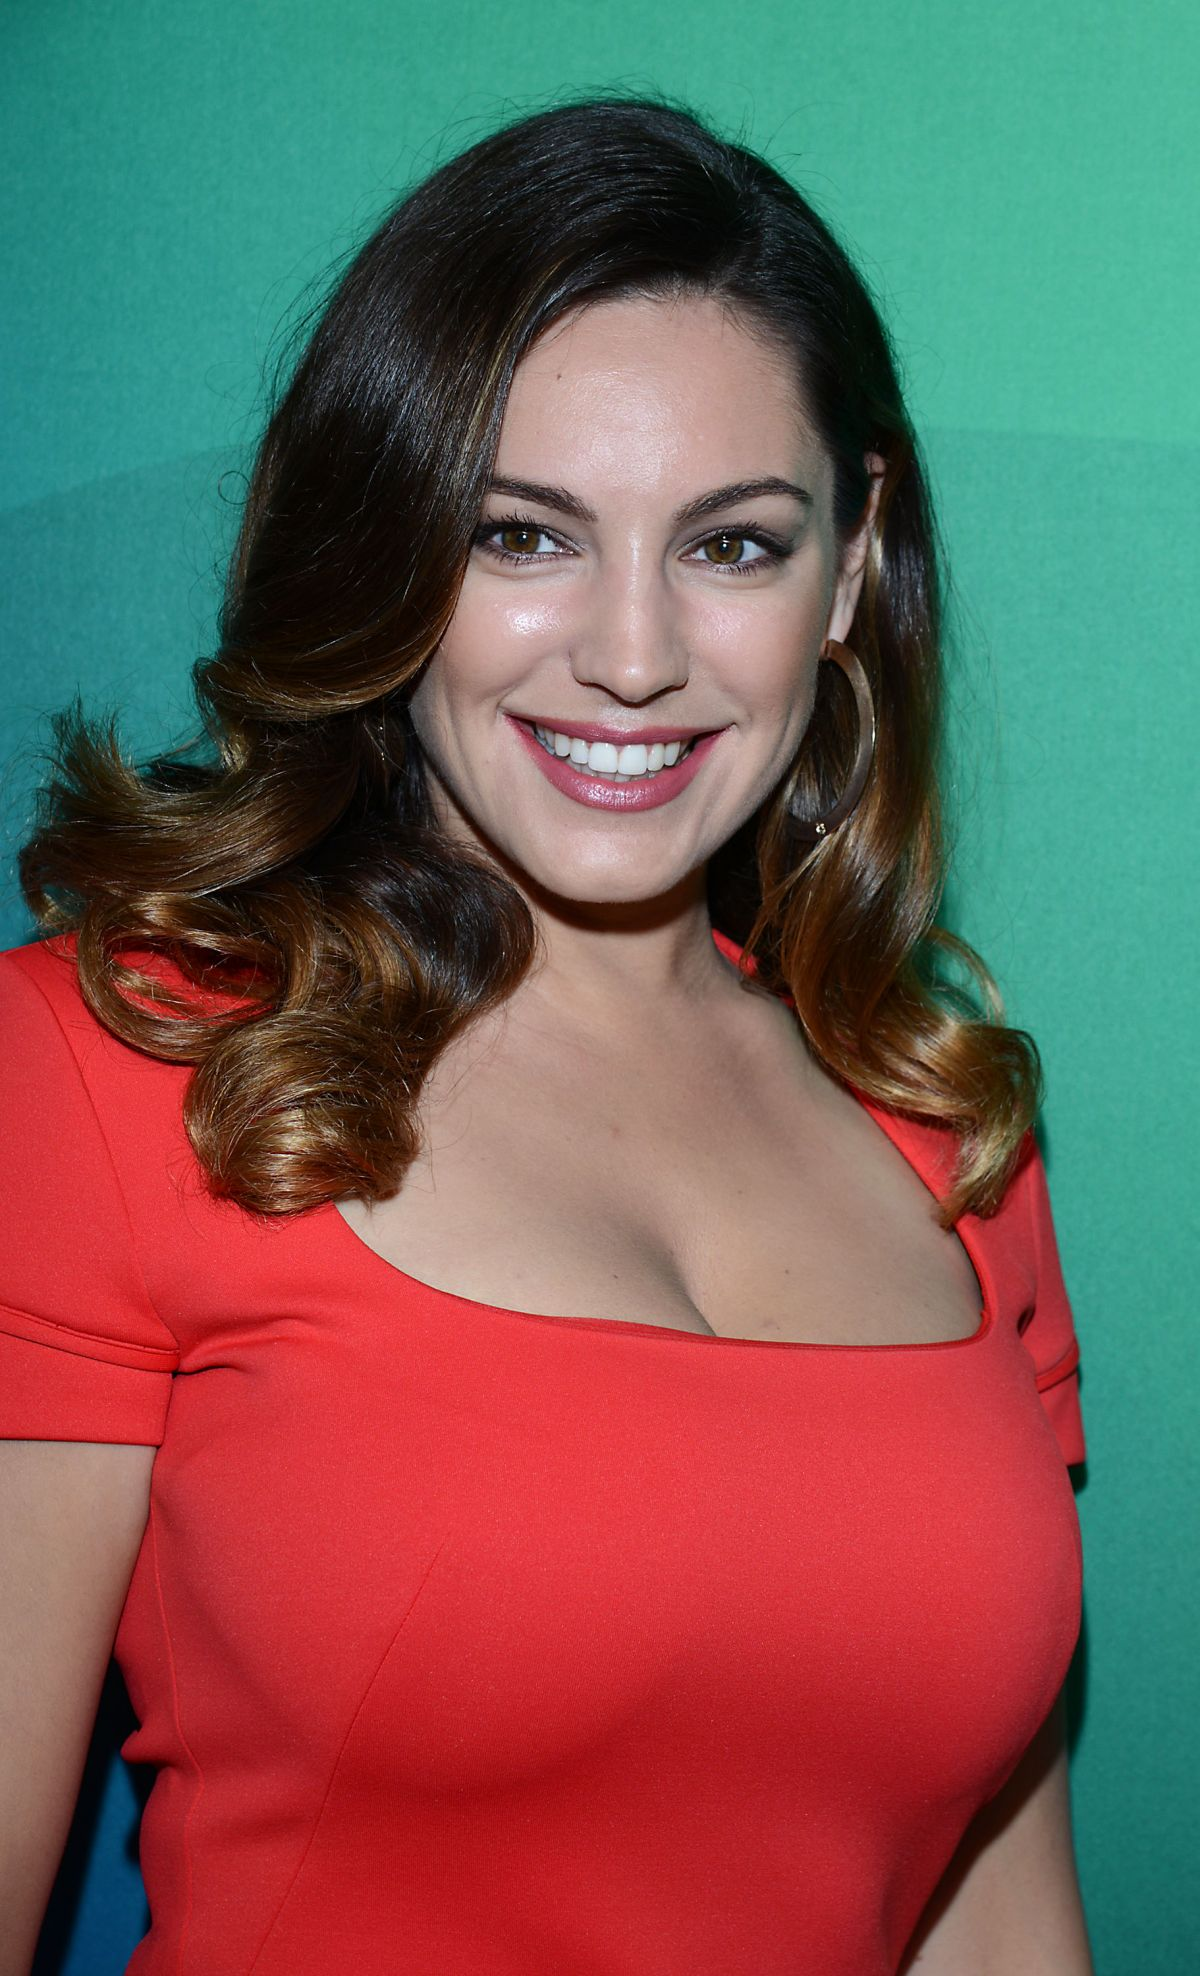 kelly brook fansitekelly brook instagram, kelly brook age, kelly brook wiki, kelly brook imdb, kelly brook interview, kelly brook skechers, kelly brook dress, kelly brook workout, kelly brook car, kelly brook weight loss, kelly brook twitter, kelly brook 2015 calendar, kelly brook facebook, kelly brook daily mail, kelly brook net worth, kelly brook listal, kelly brook diet, kelly brook tv, kelly brook fansite